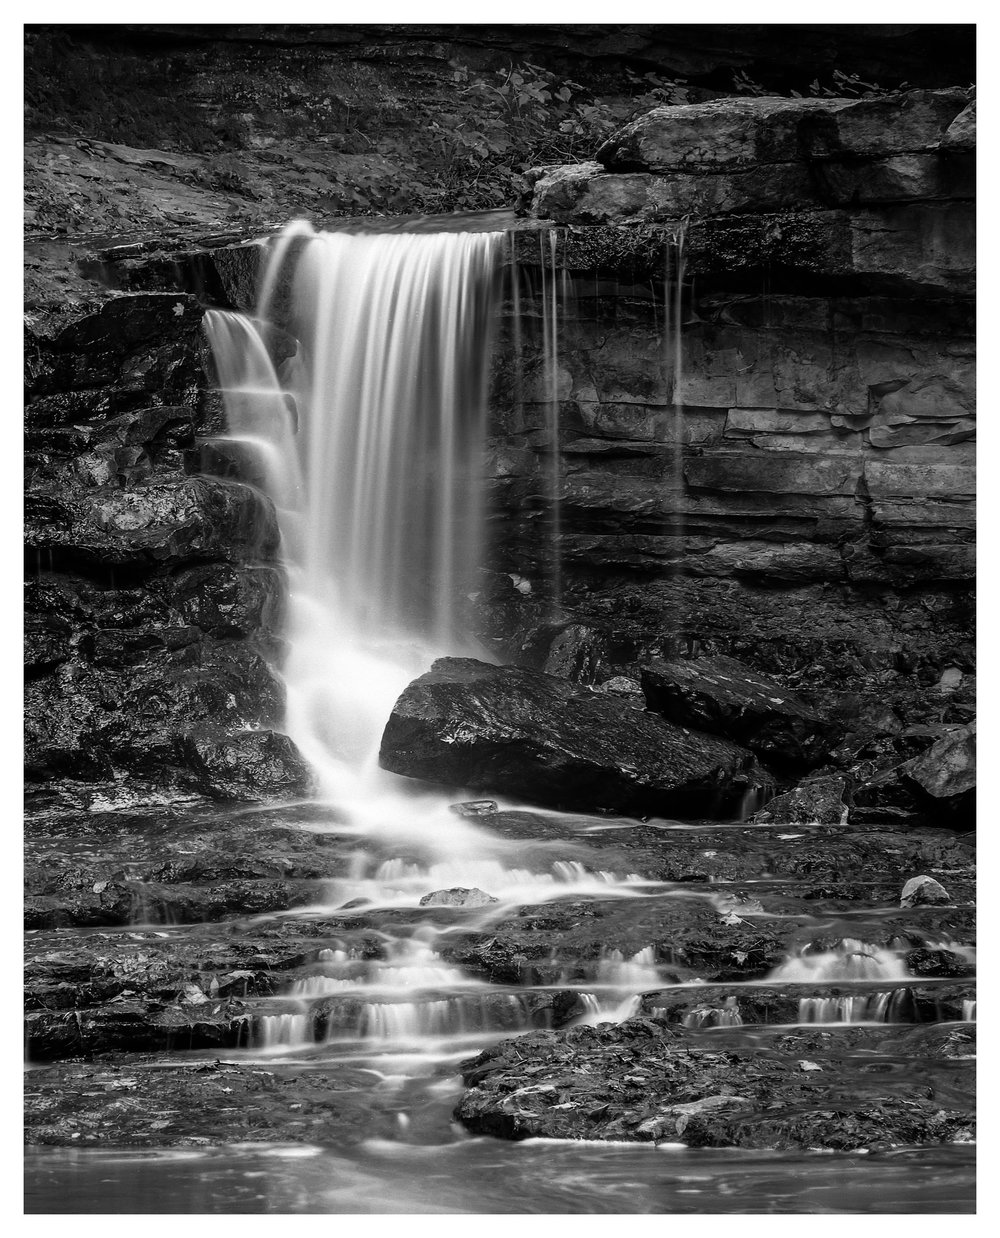 McCormick Falls - Mamiya RB67 ProS with ACROS 100 film, long exposure